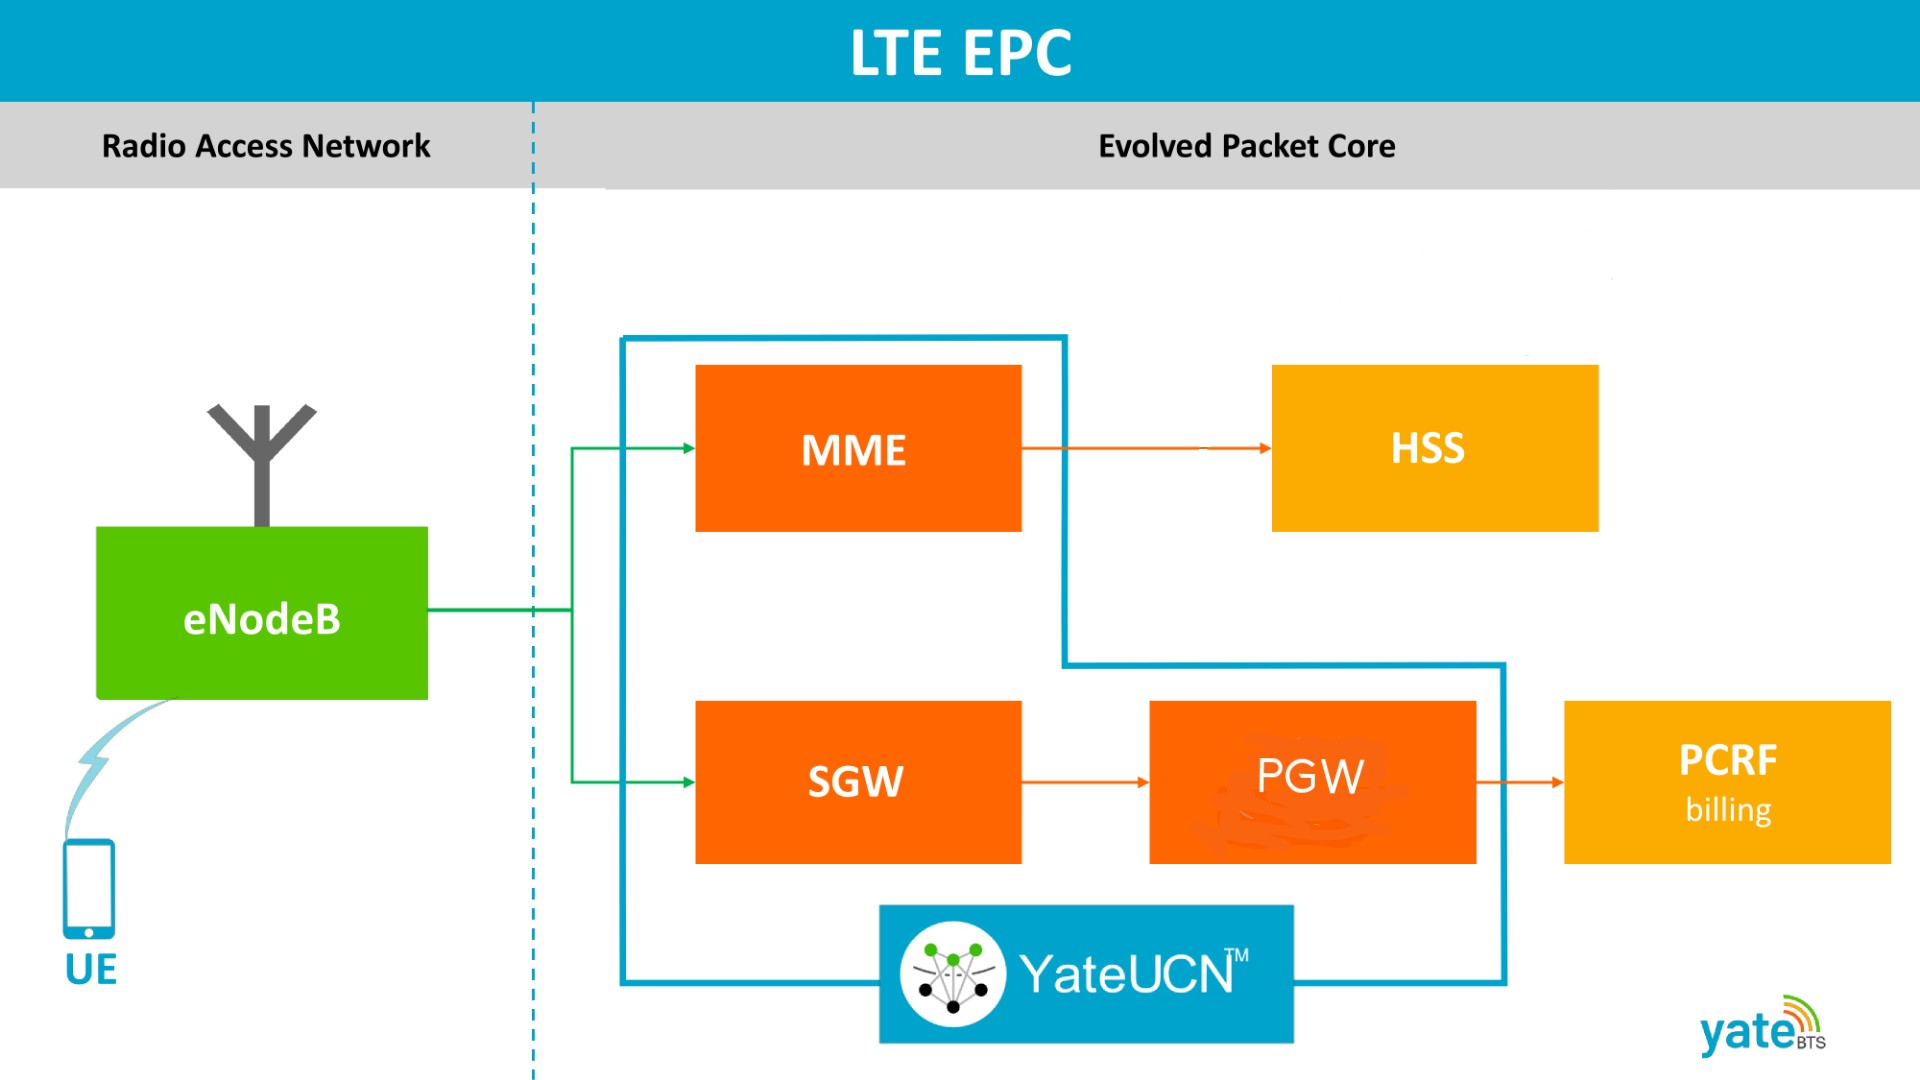 YateUCN is the LTE EPC solution for data traffic increase due to lockdown